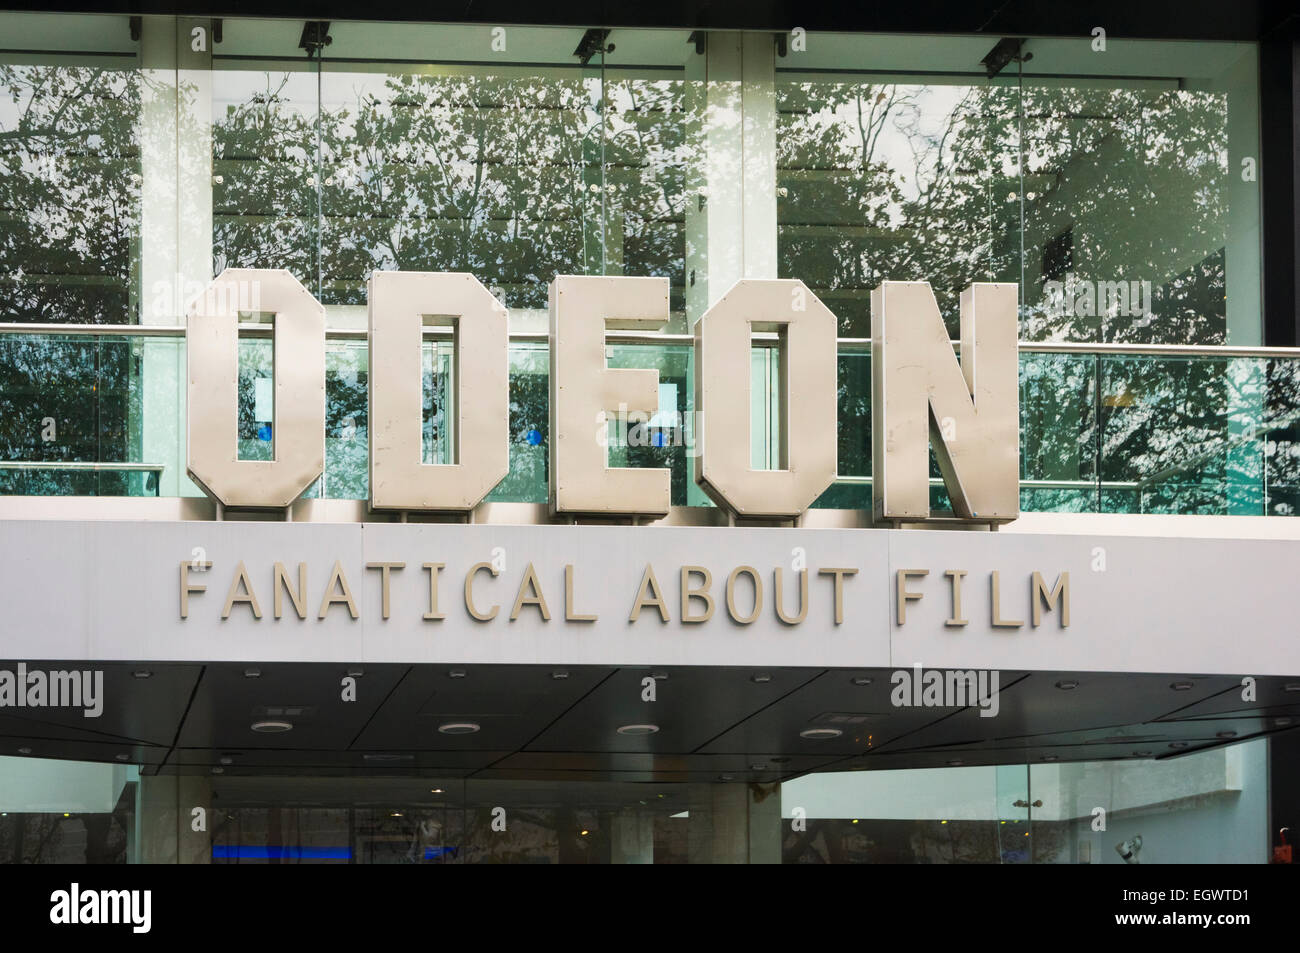 Odeon cinema in Leicester Square, London, UK - Stock Image